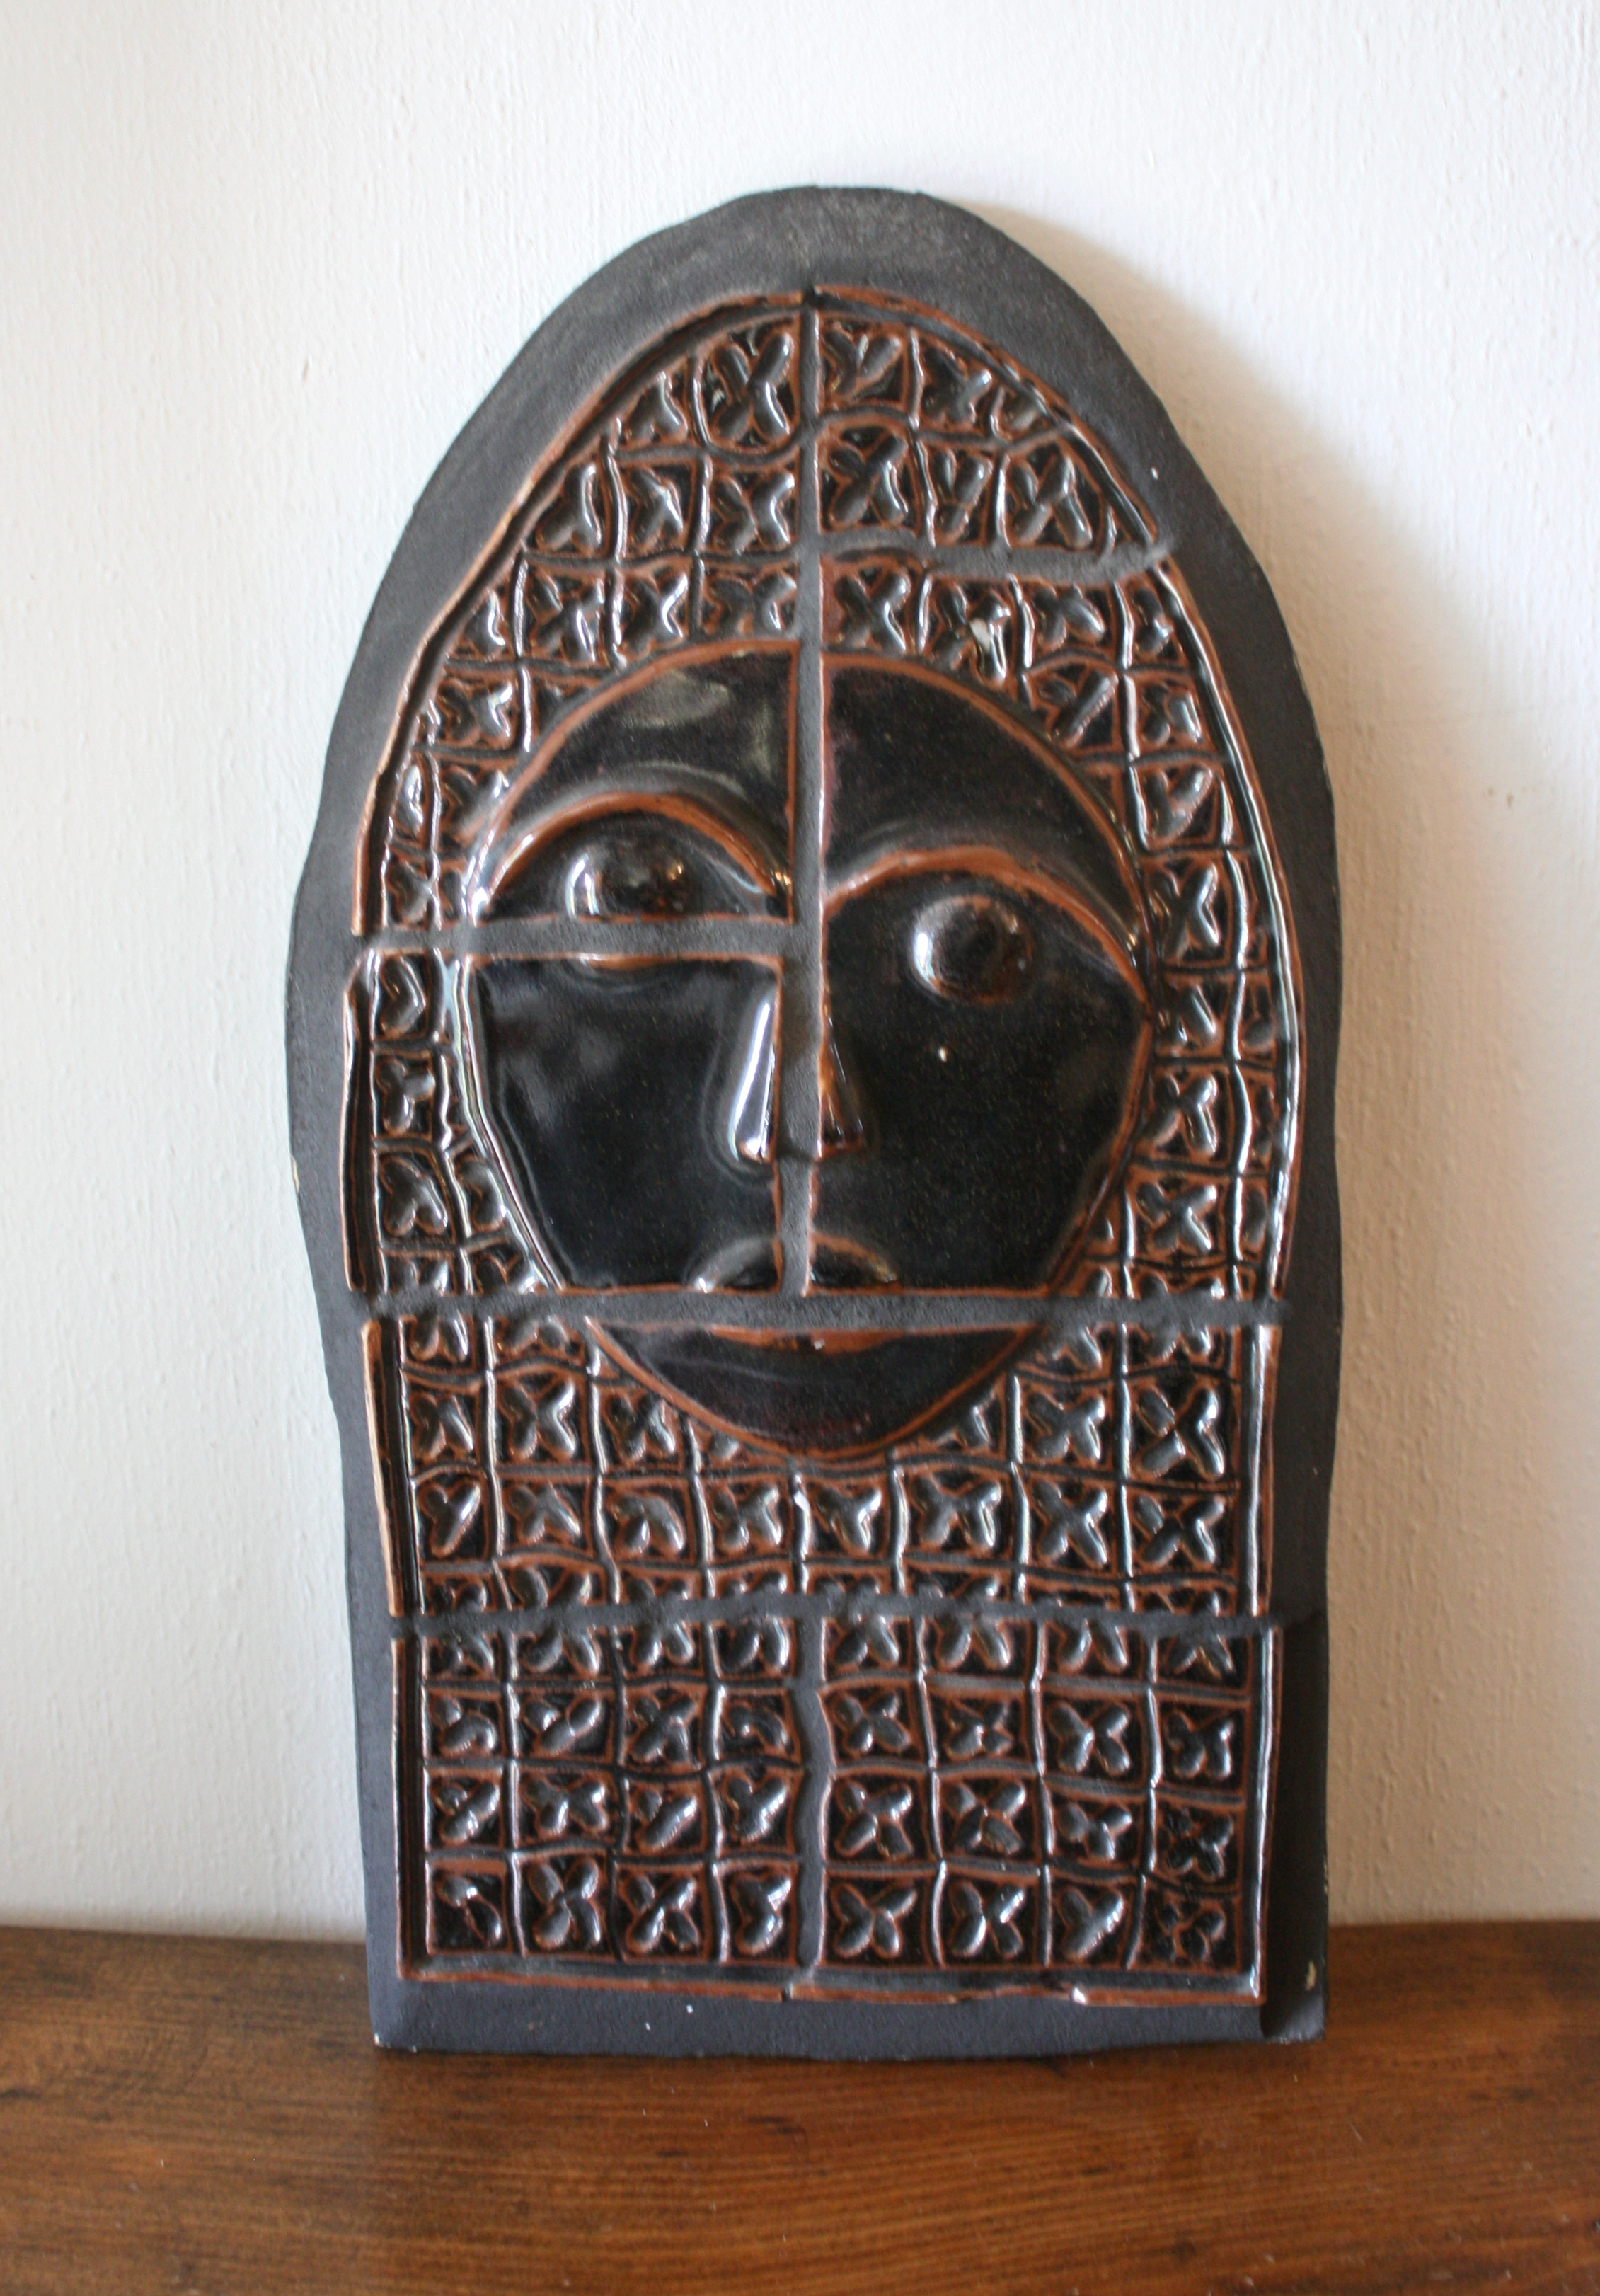 mcm tile face sculpture 1.JPG